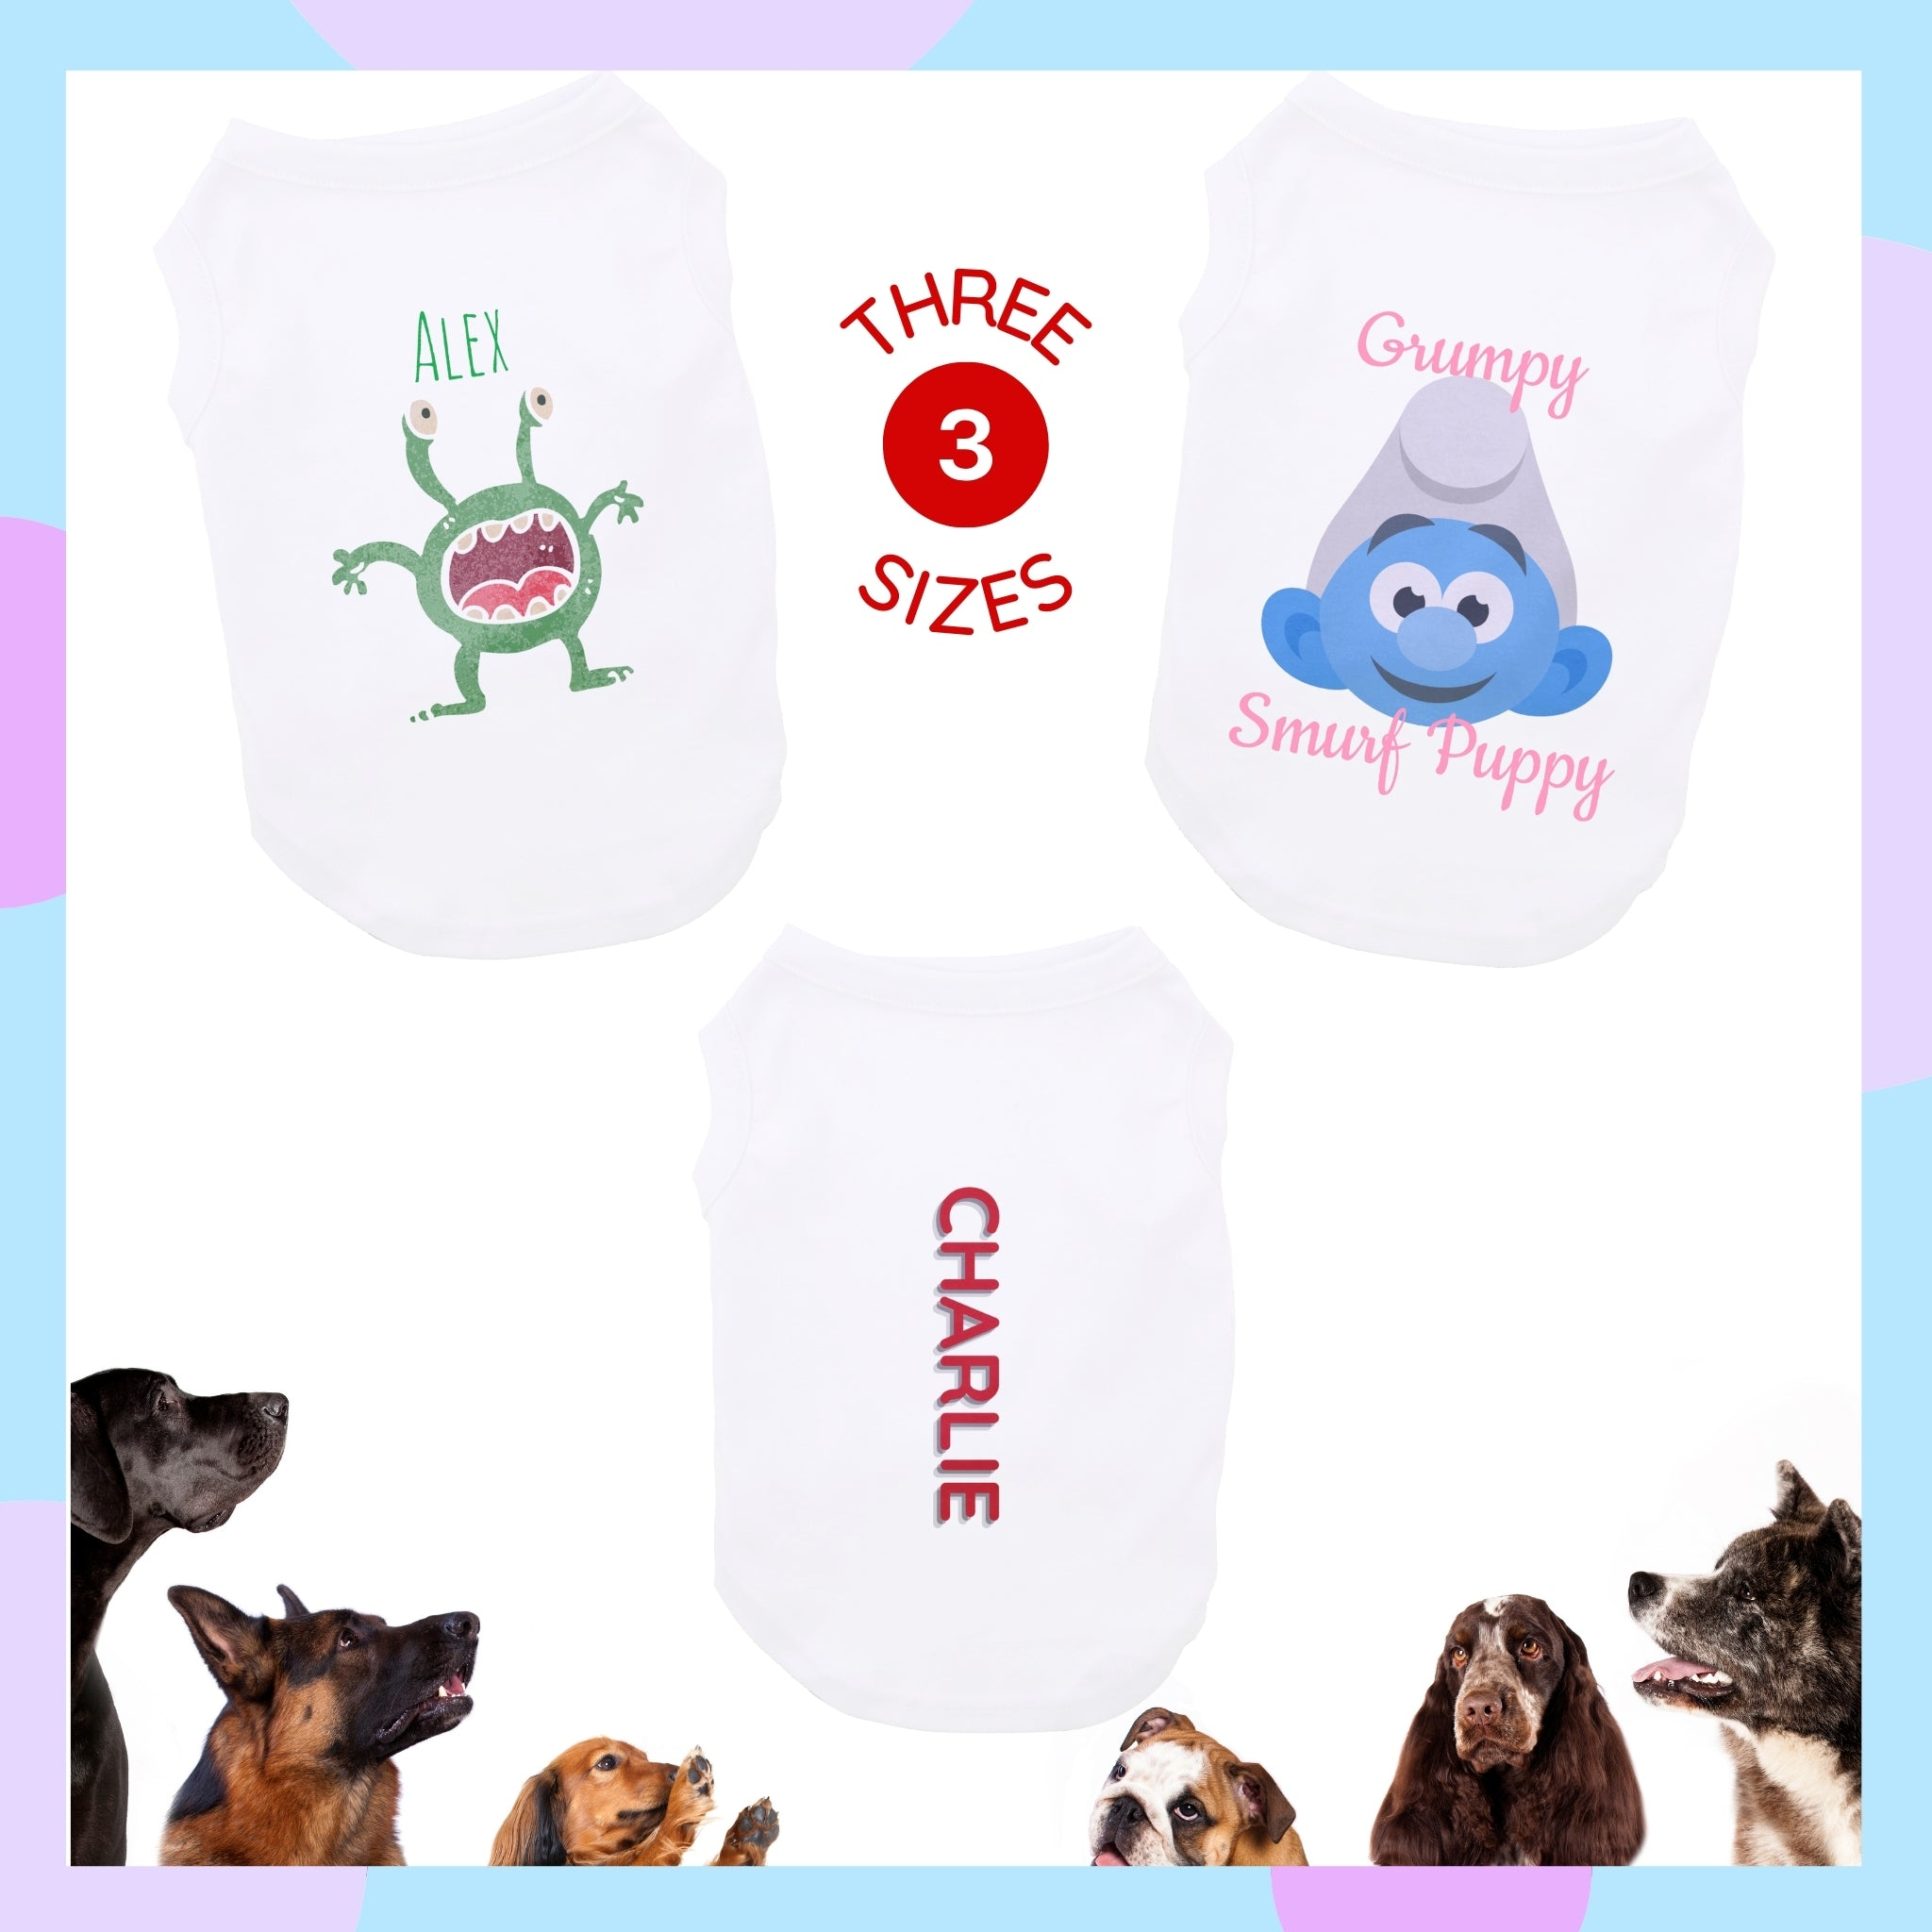 Custom Puppy Dog Tee Shirt (3 Sizes) I Design Your Own Dog T-Shirts at Design AirPods